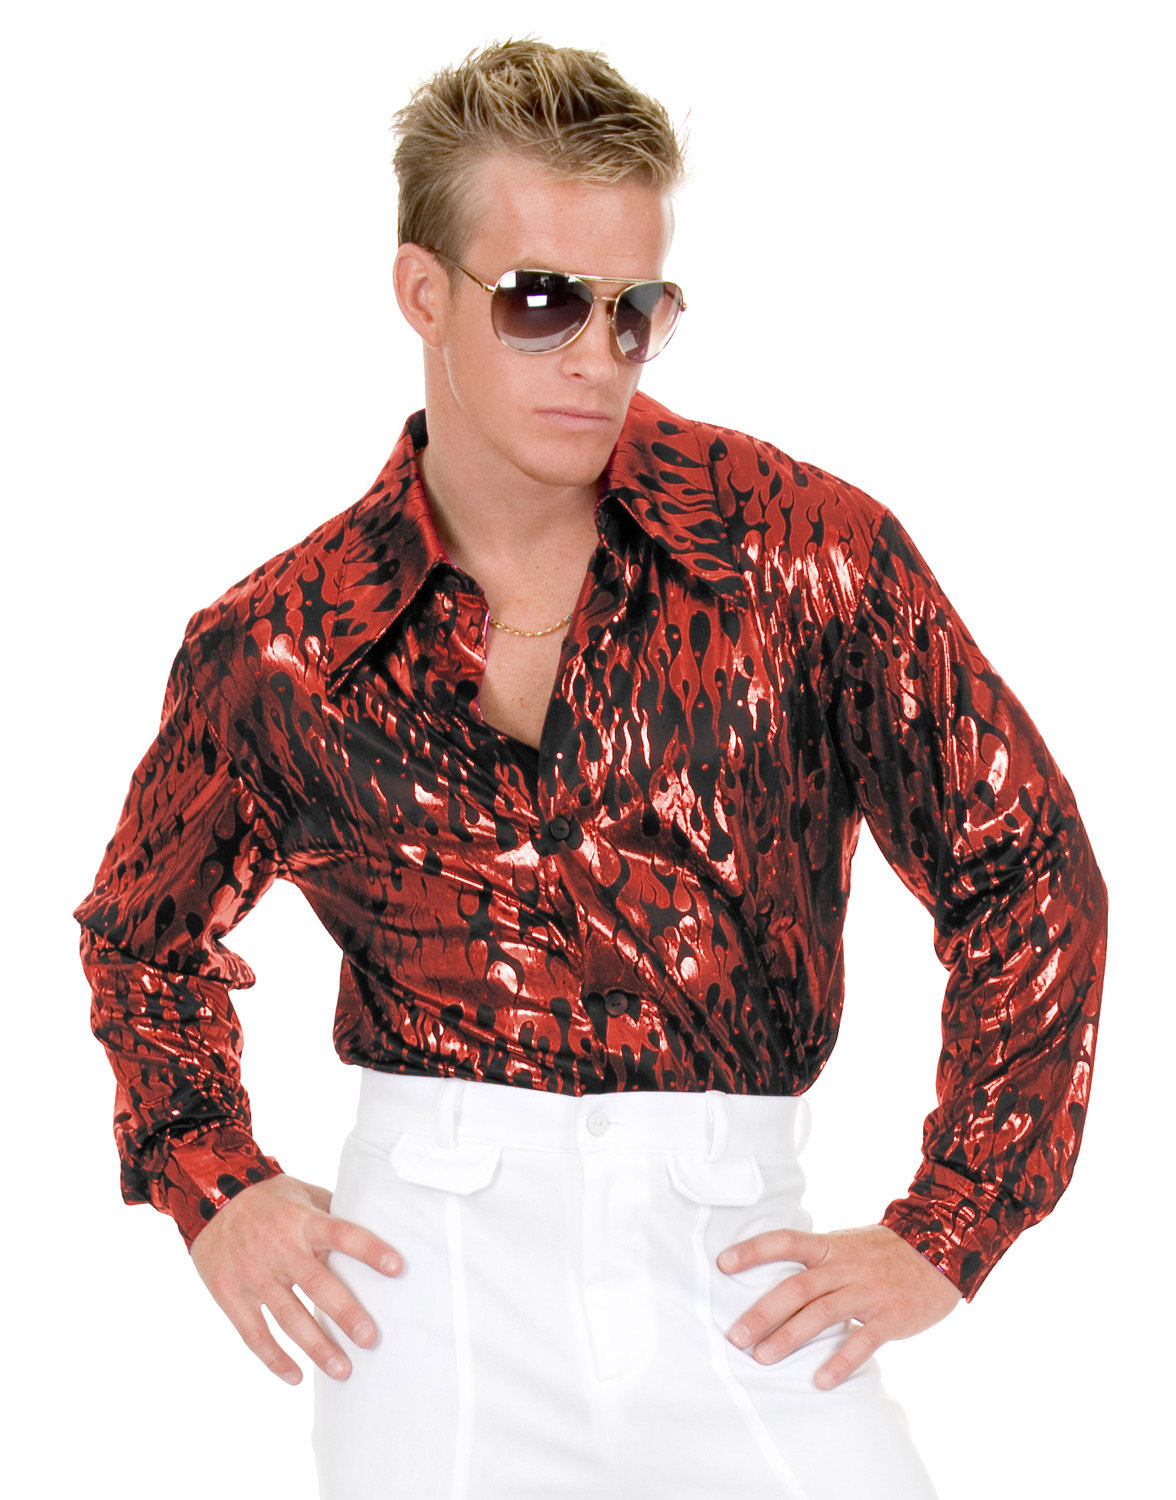 red-flame-disco-shirt-01593.jpg